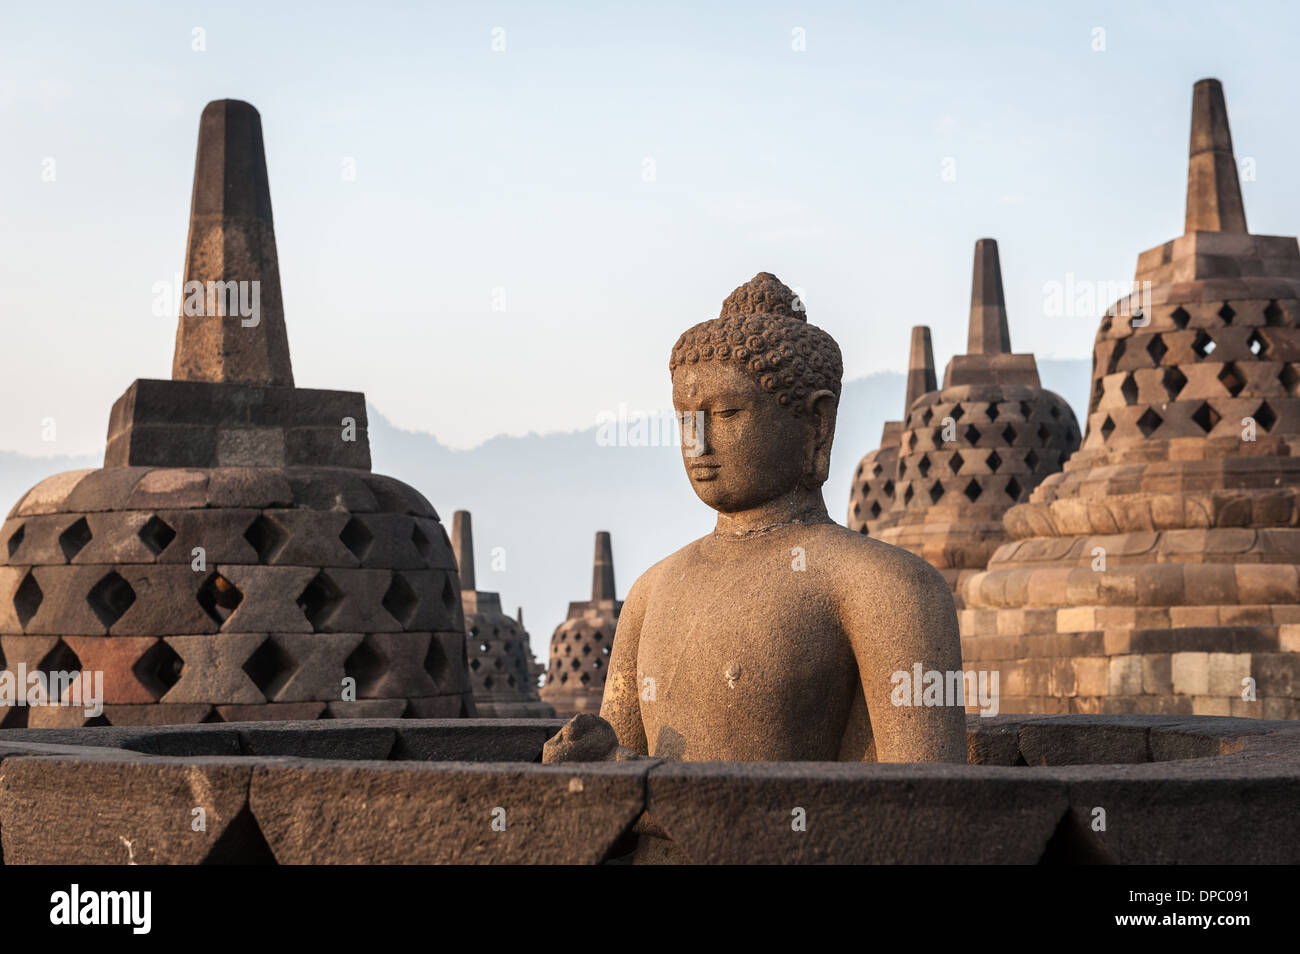 Sunrising over the stupas of the Buddhist temple of Borobudur, Java, Indonesia. - Stock Image